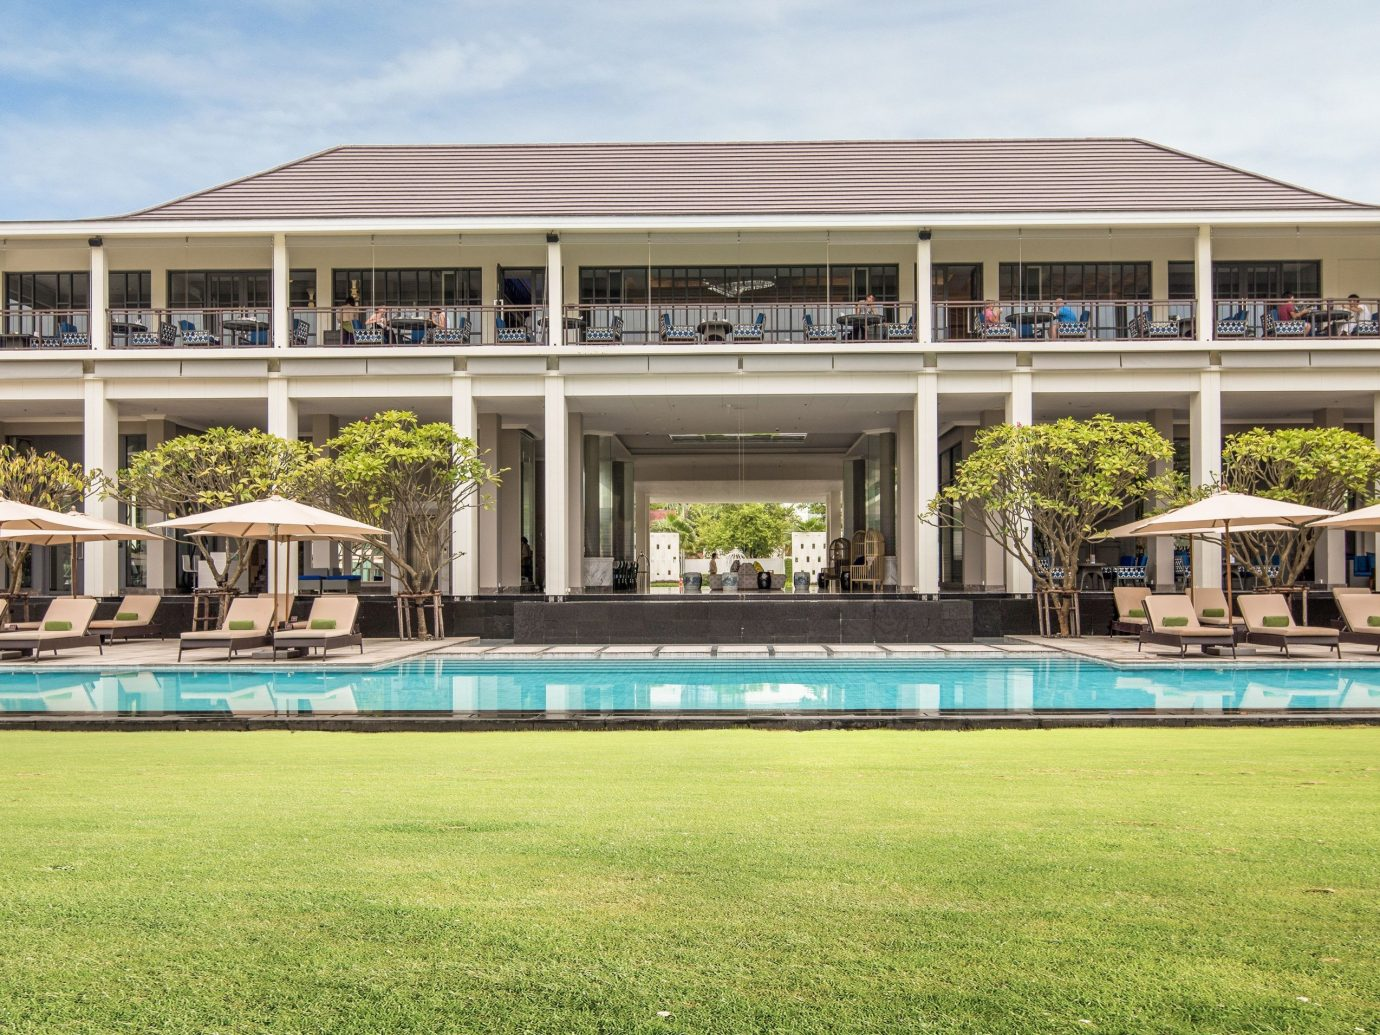 Hotels grass sky outdoor building structure leisure property estate sport venue green leisure centre residential area swimming pool stadium lawn home real estate Resort